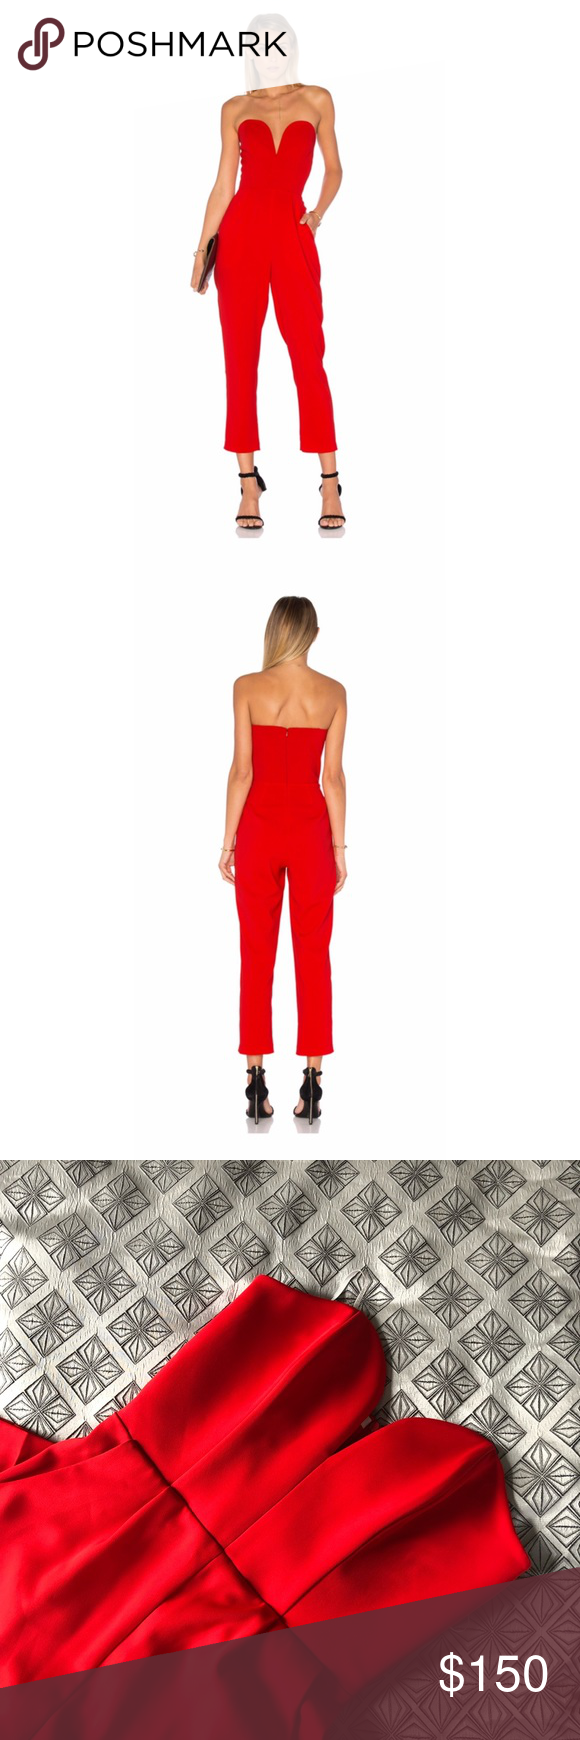 06380f98b2c Designer Red Jumpsuit Purchased from Revolve. Never worn but I did remove  the tags. Classic jumpsuit with a red color that will be sure to turn heads.